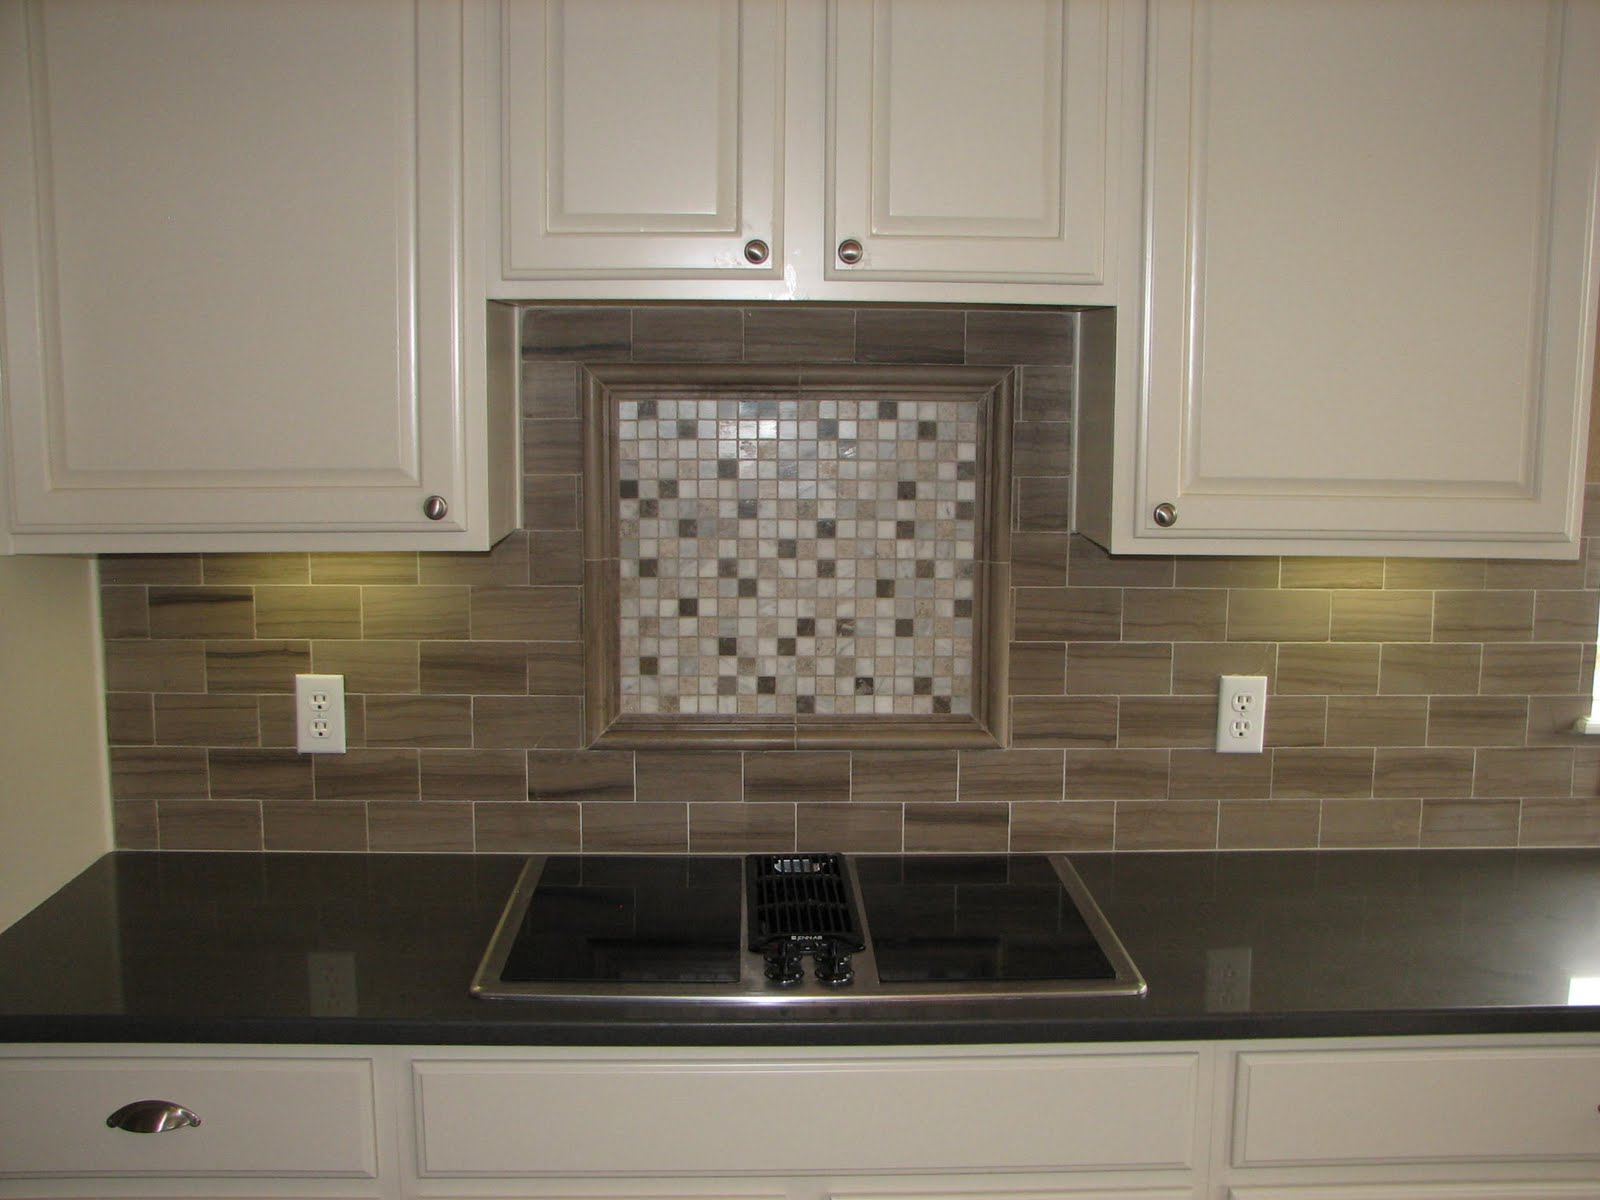 Integrity installations a division of front range backsplash tile backsplash - Kitchen wall tiles design ideas ...